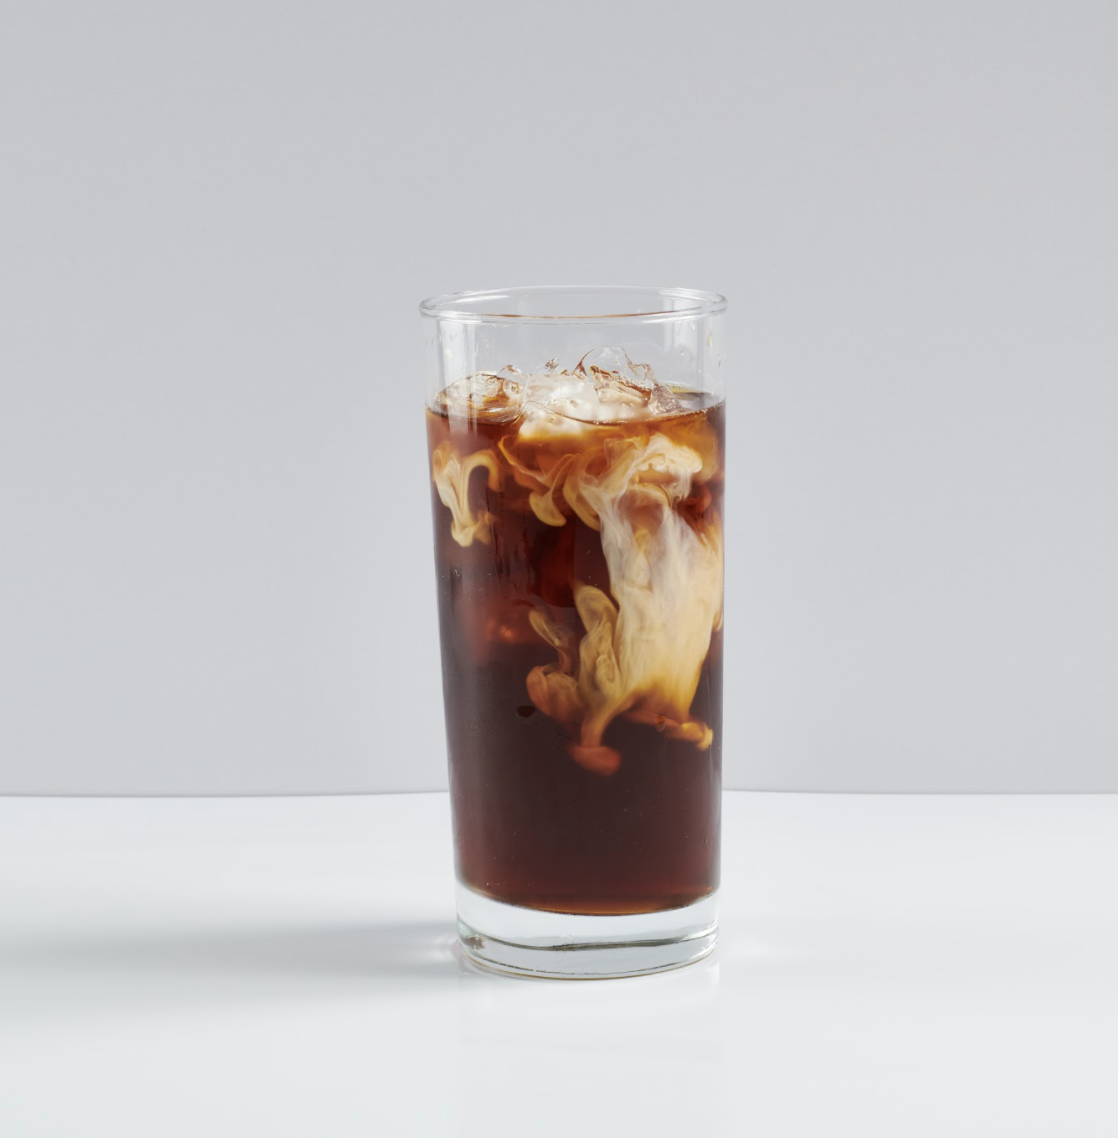 Blank Street Cold Brew